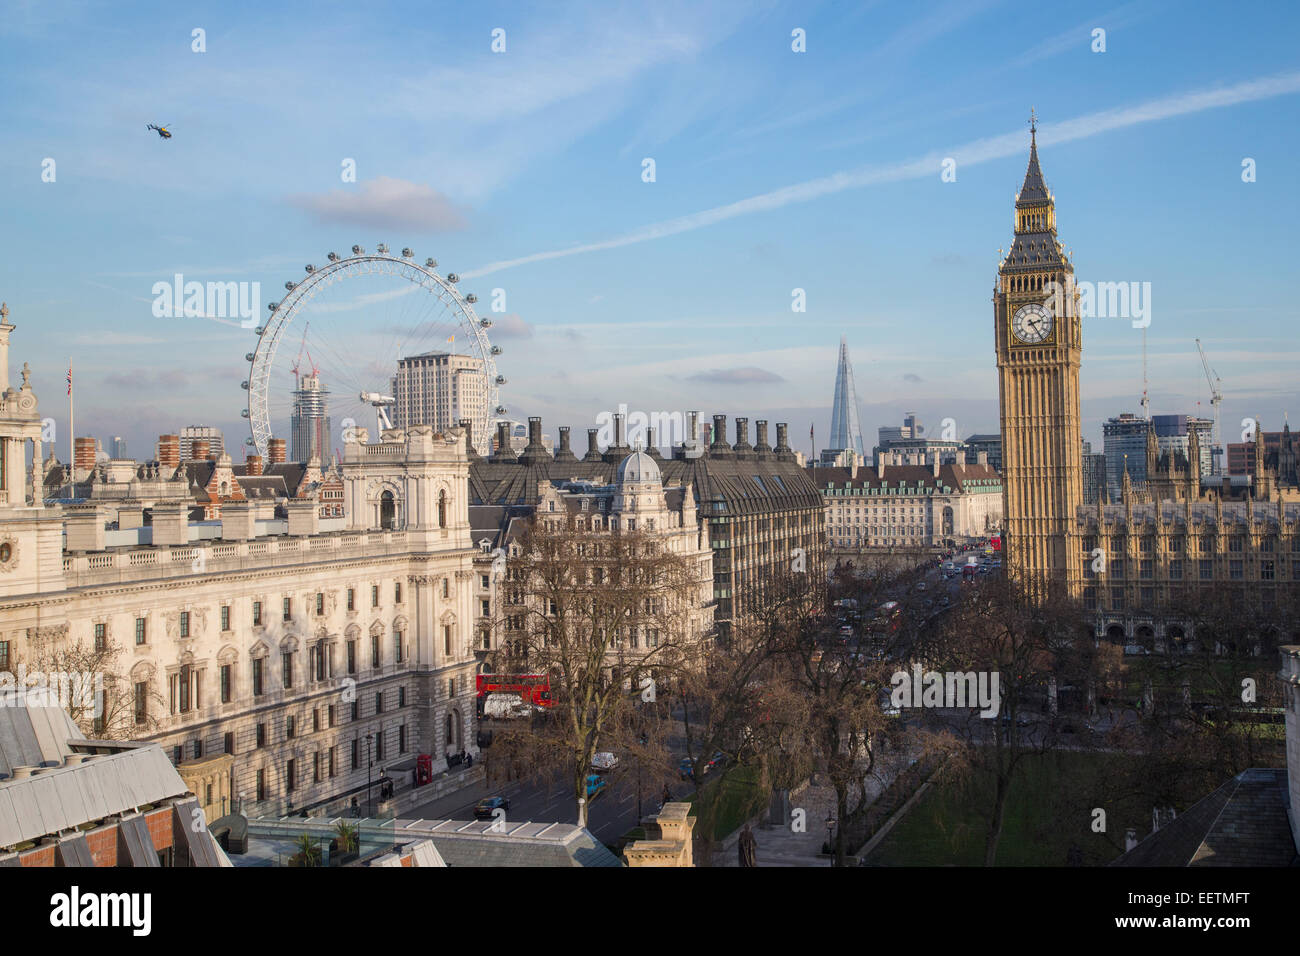 View of Parliament Square looking south with Big Ben,The London Eye and the Shard - Stock Image